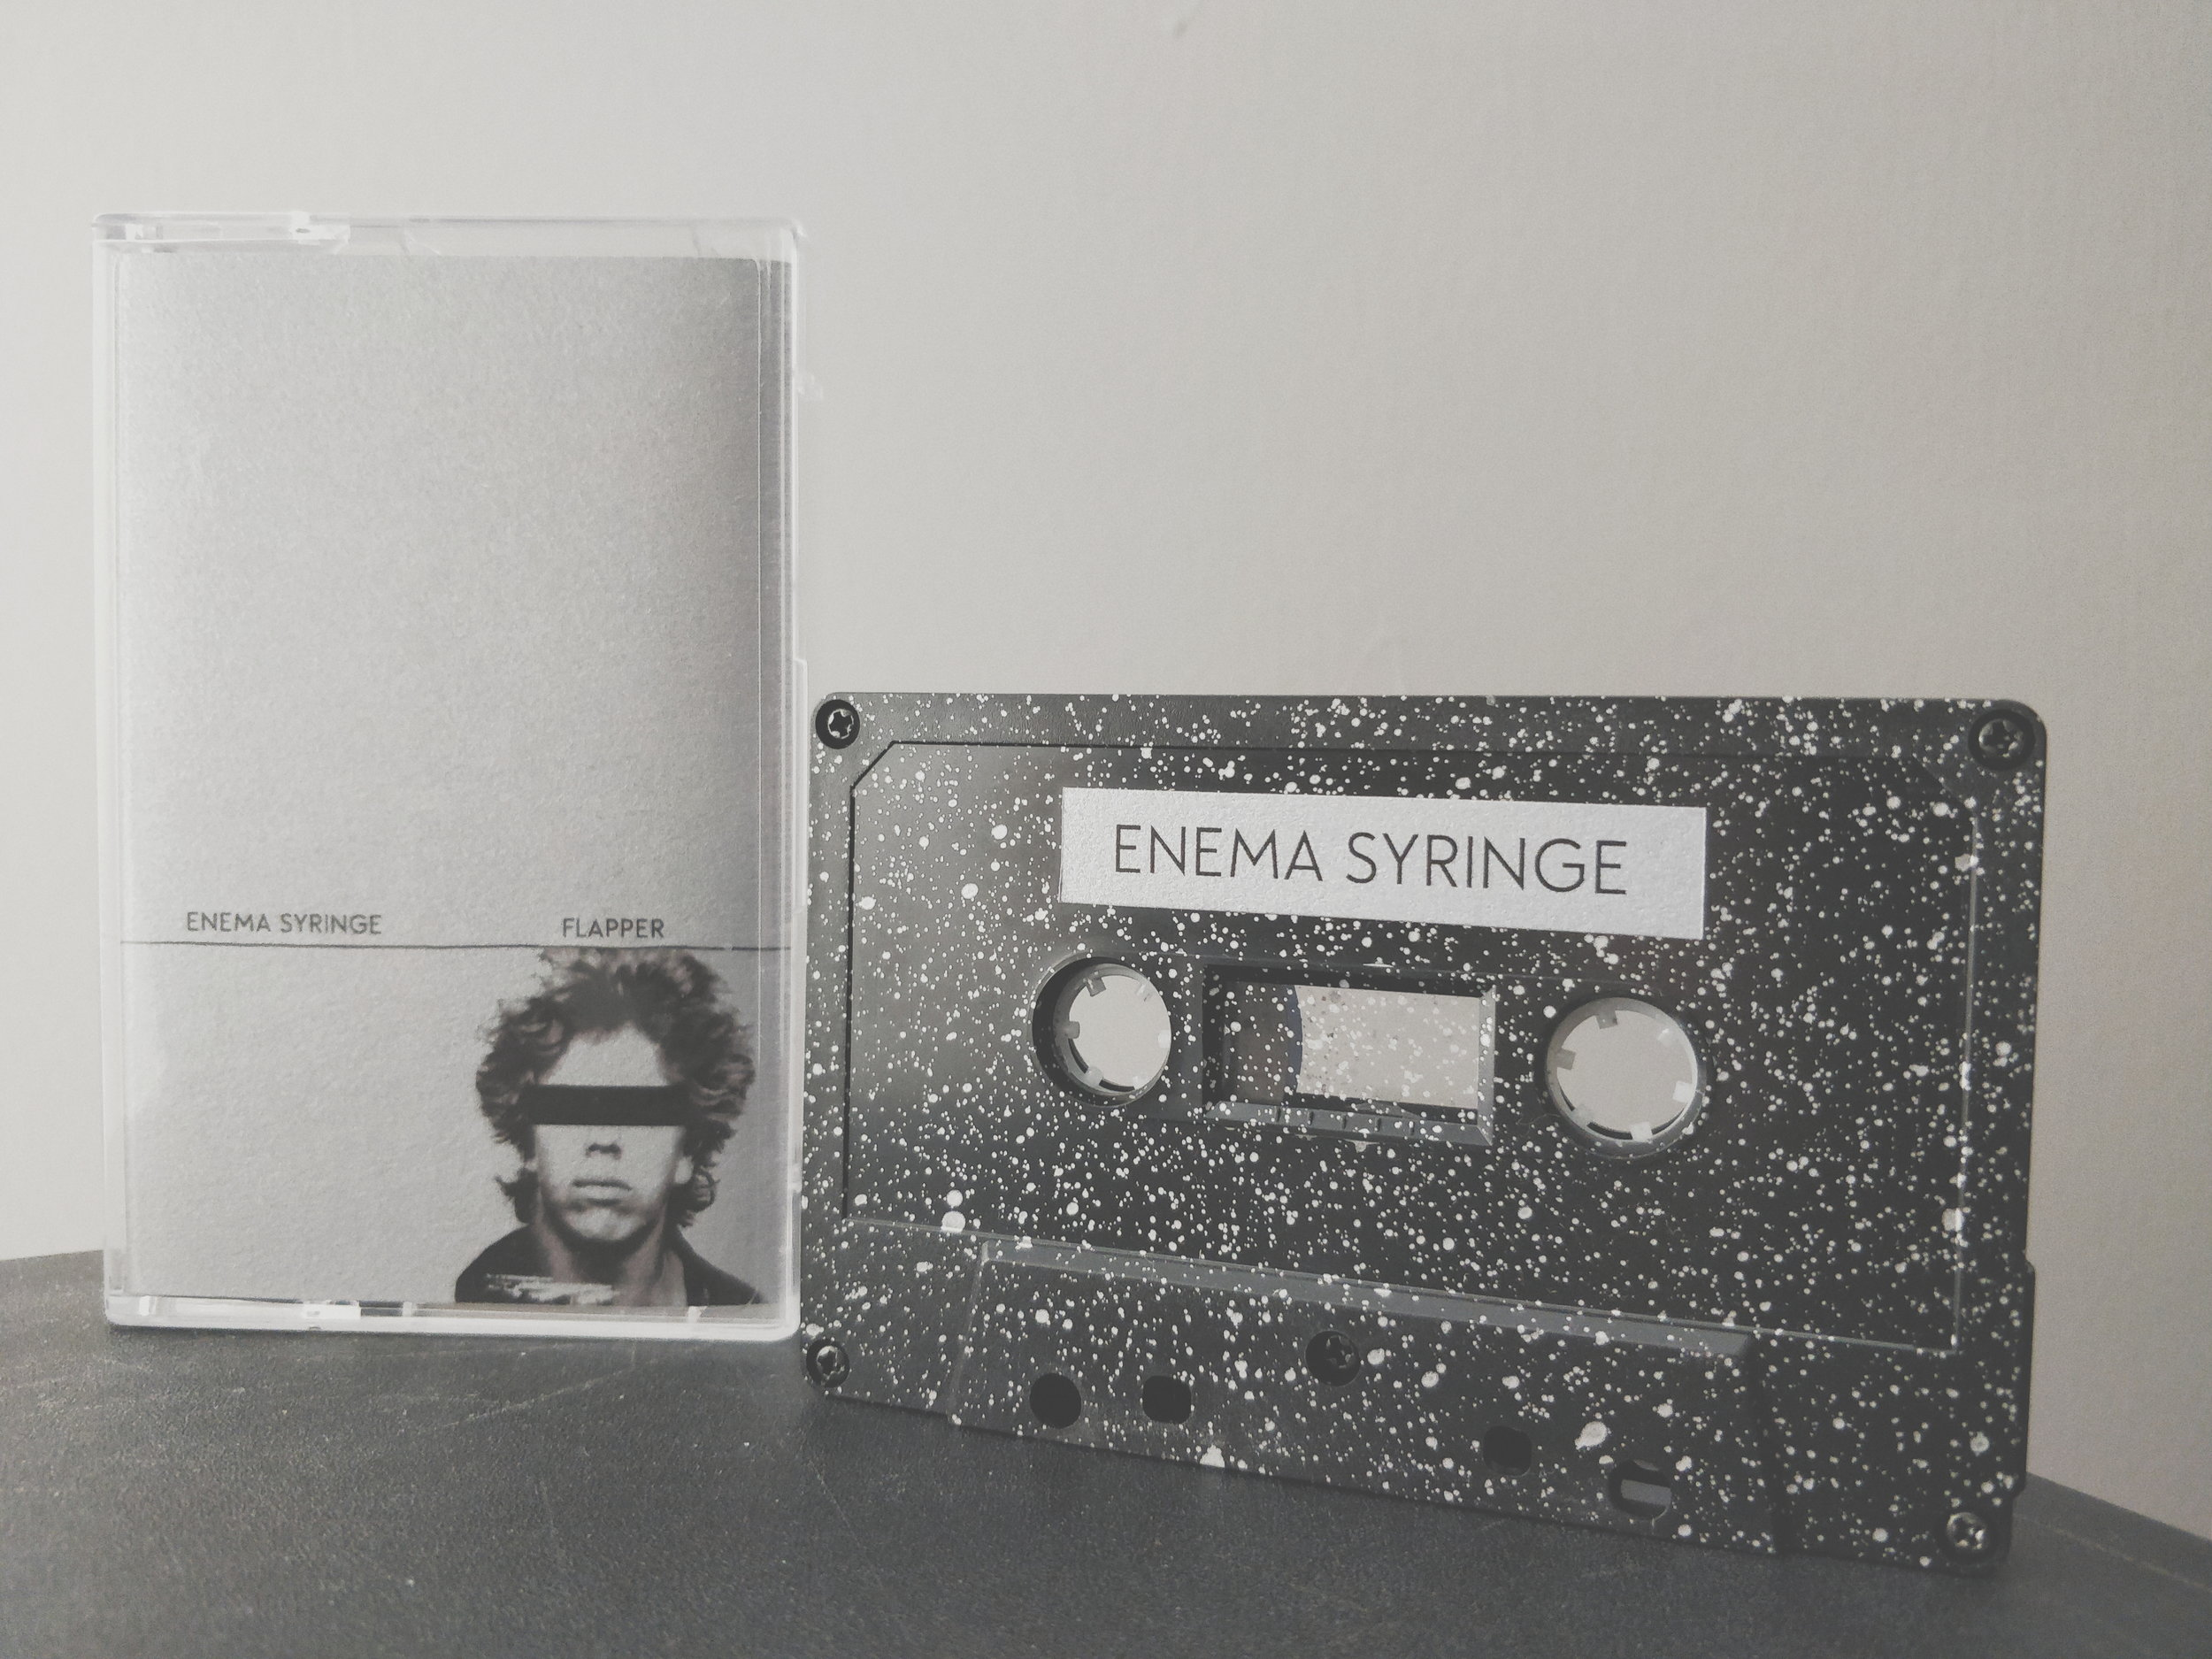 Enema Syringe - Flapper (Chondritic Sound)